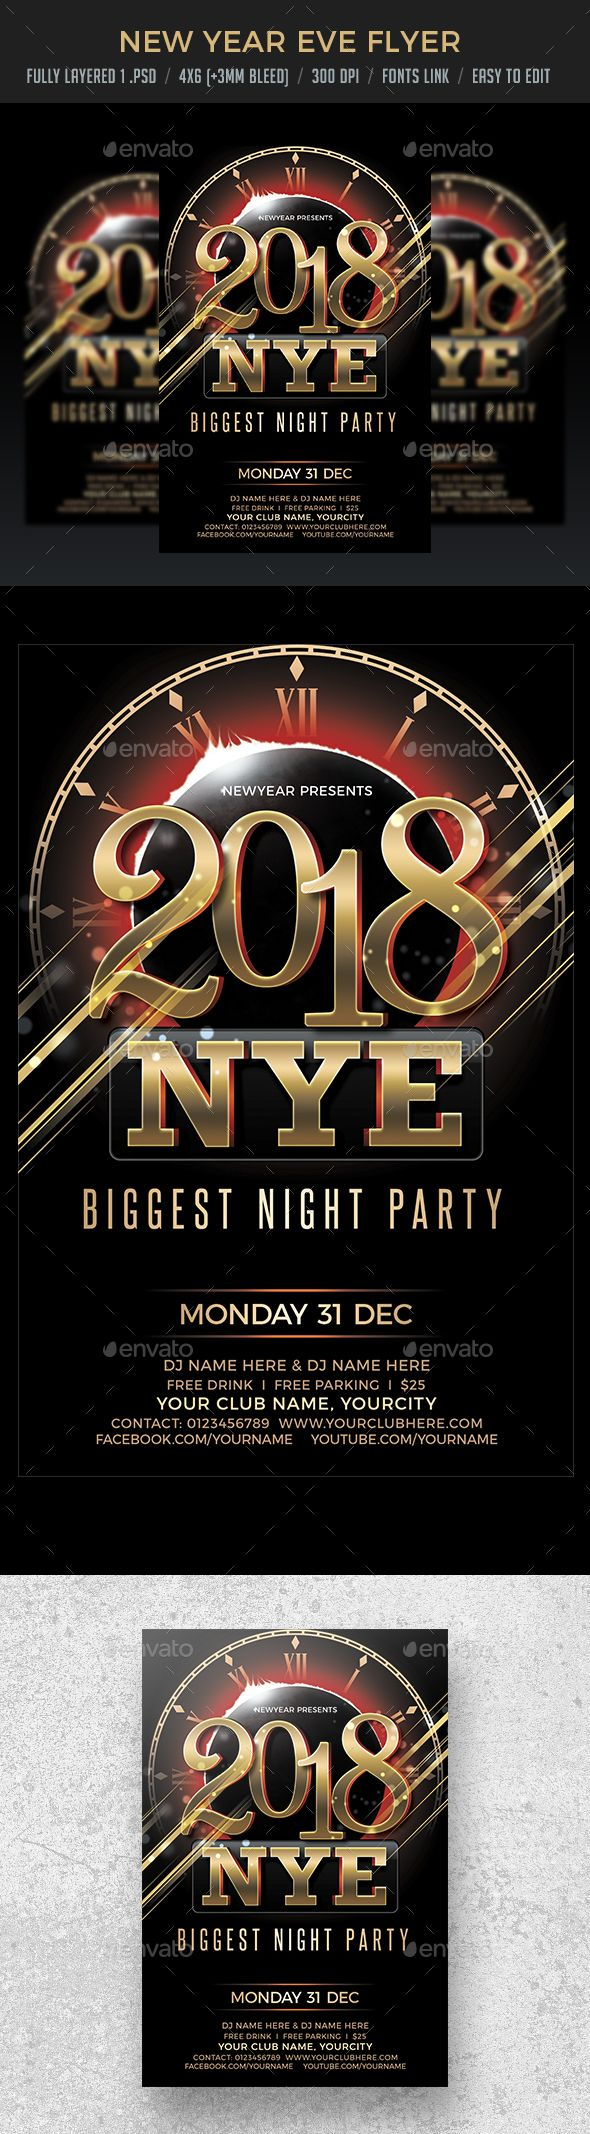 2018 New Year Eve Flyer Template PSD #nye #design